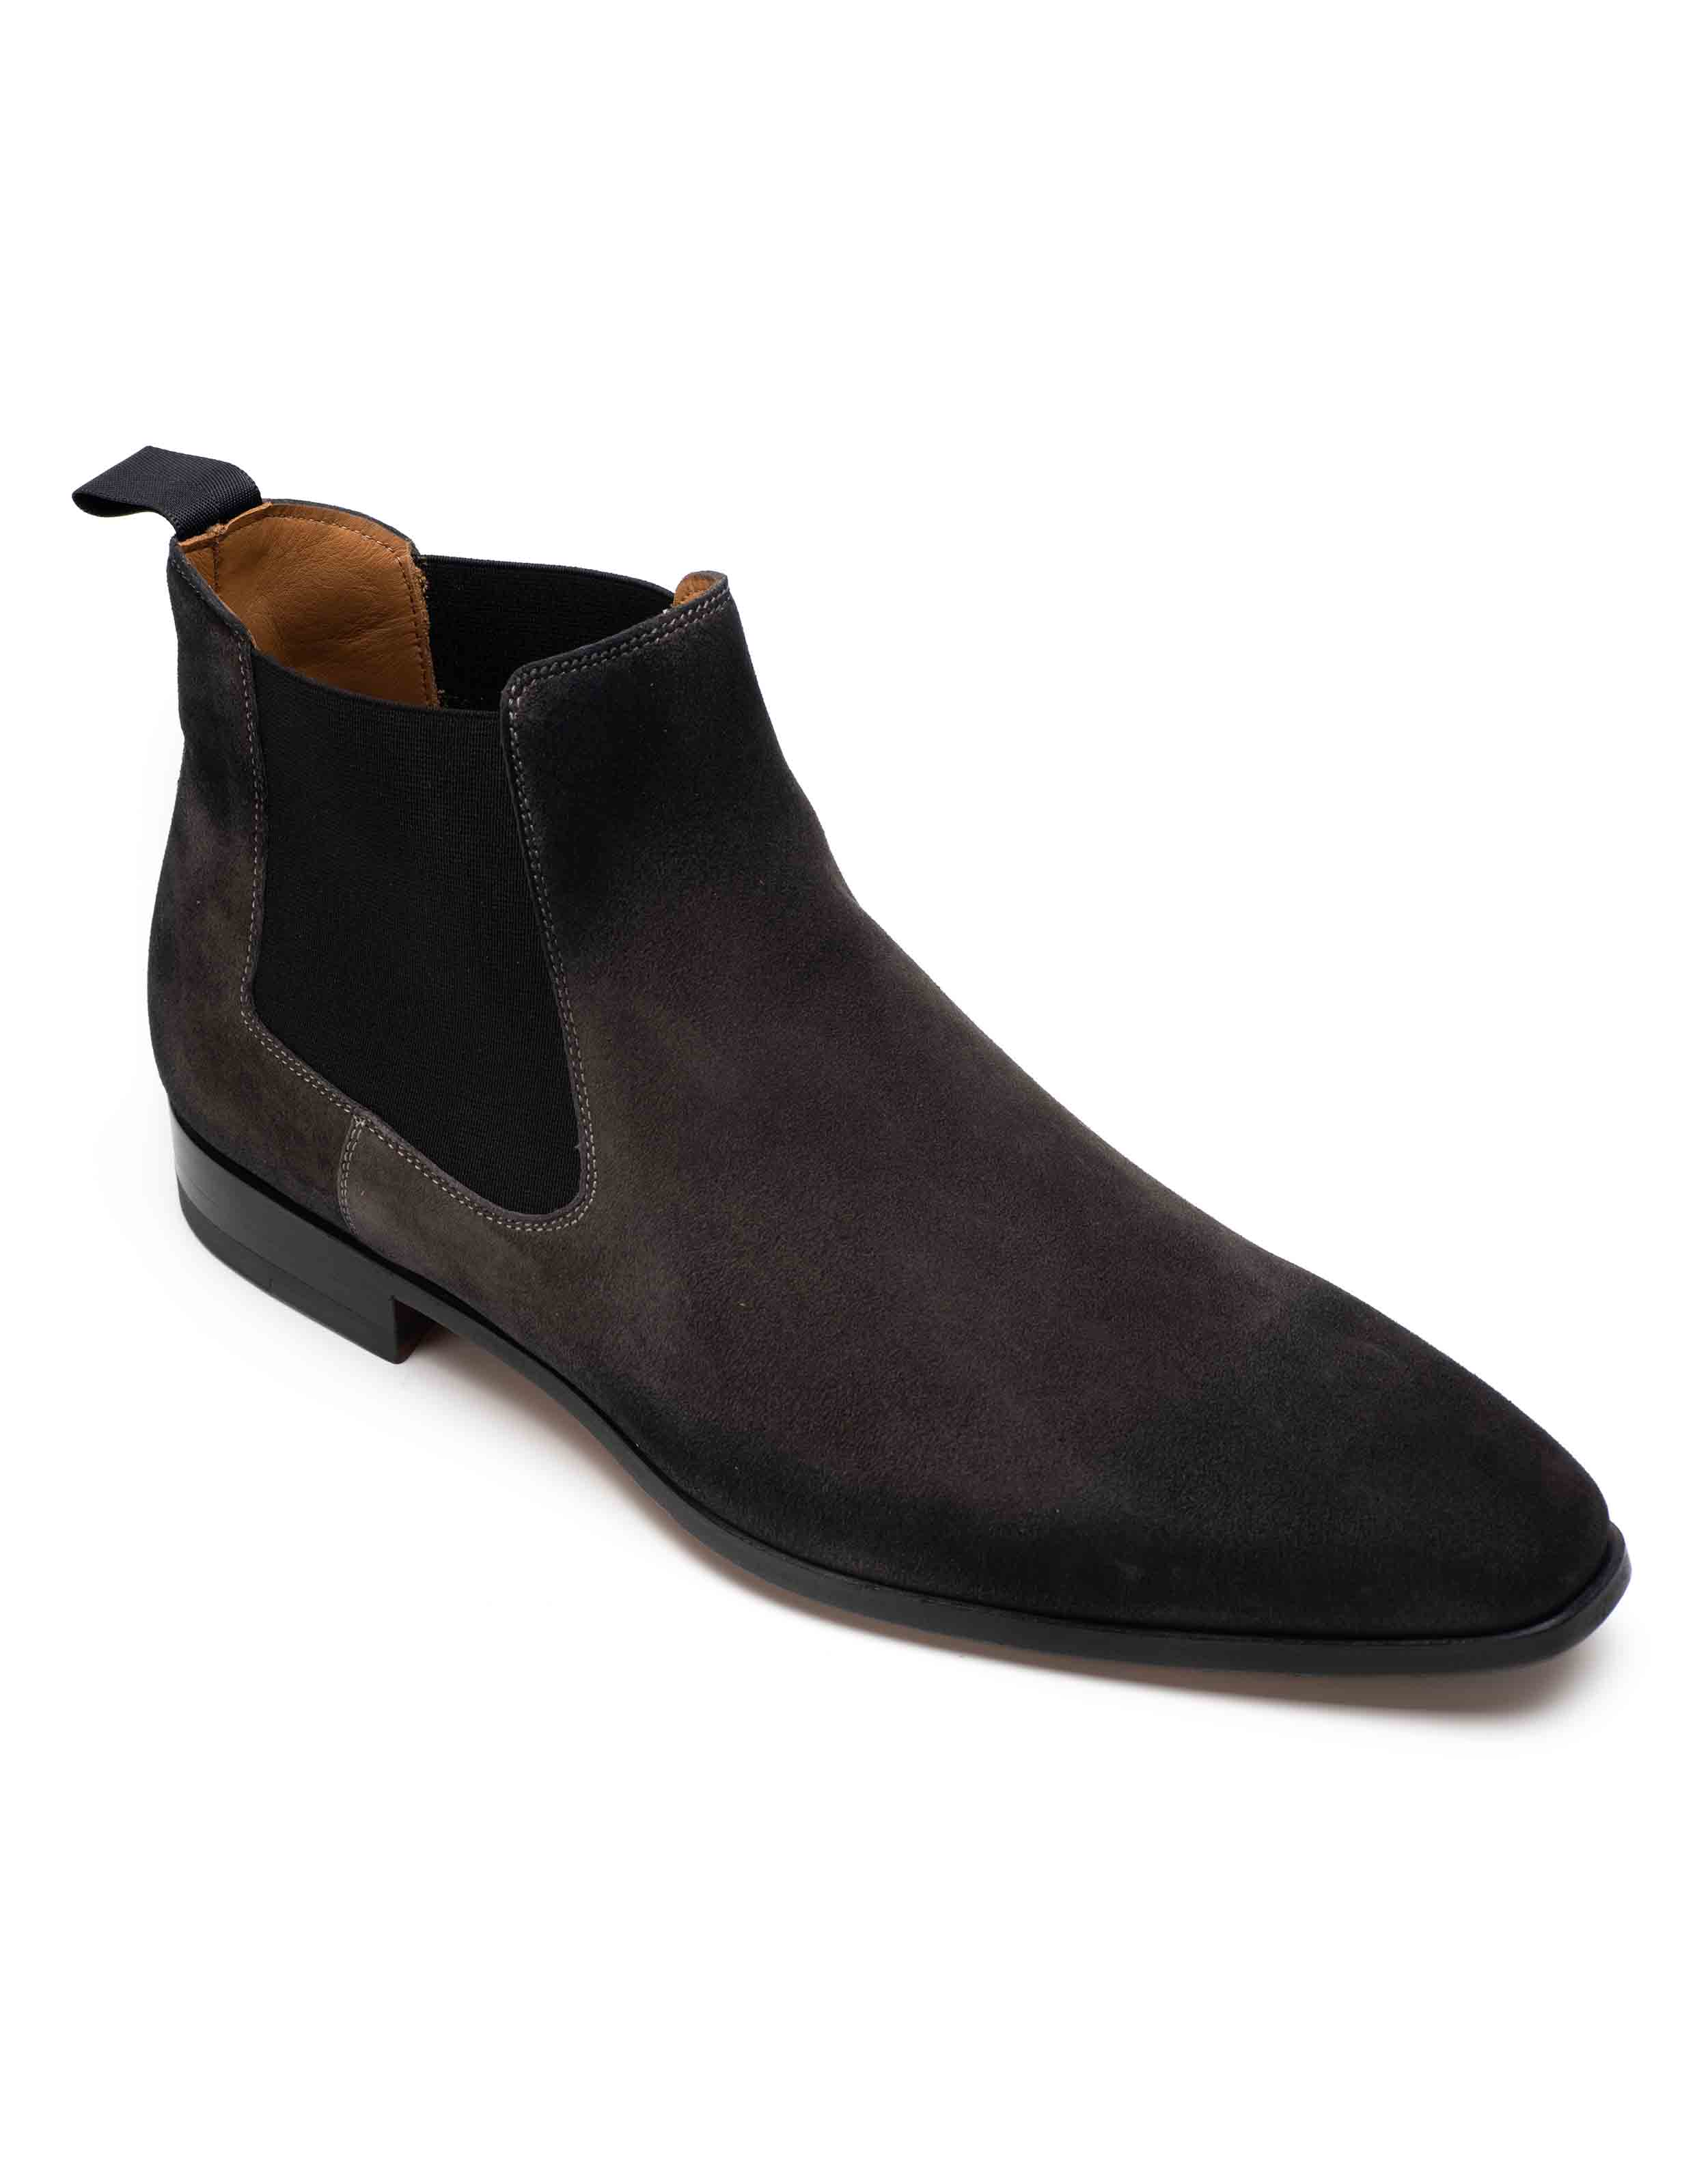 SUEDE CHELSEA BOOT2